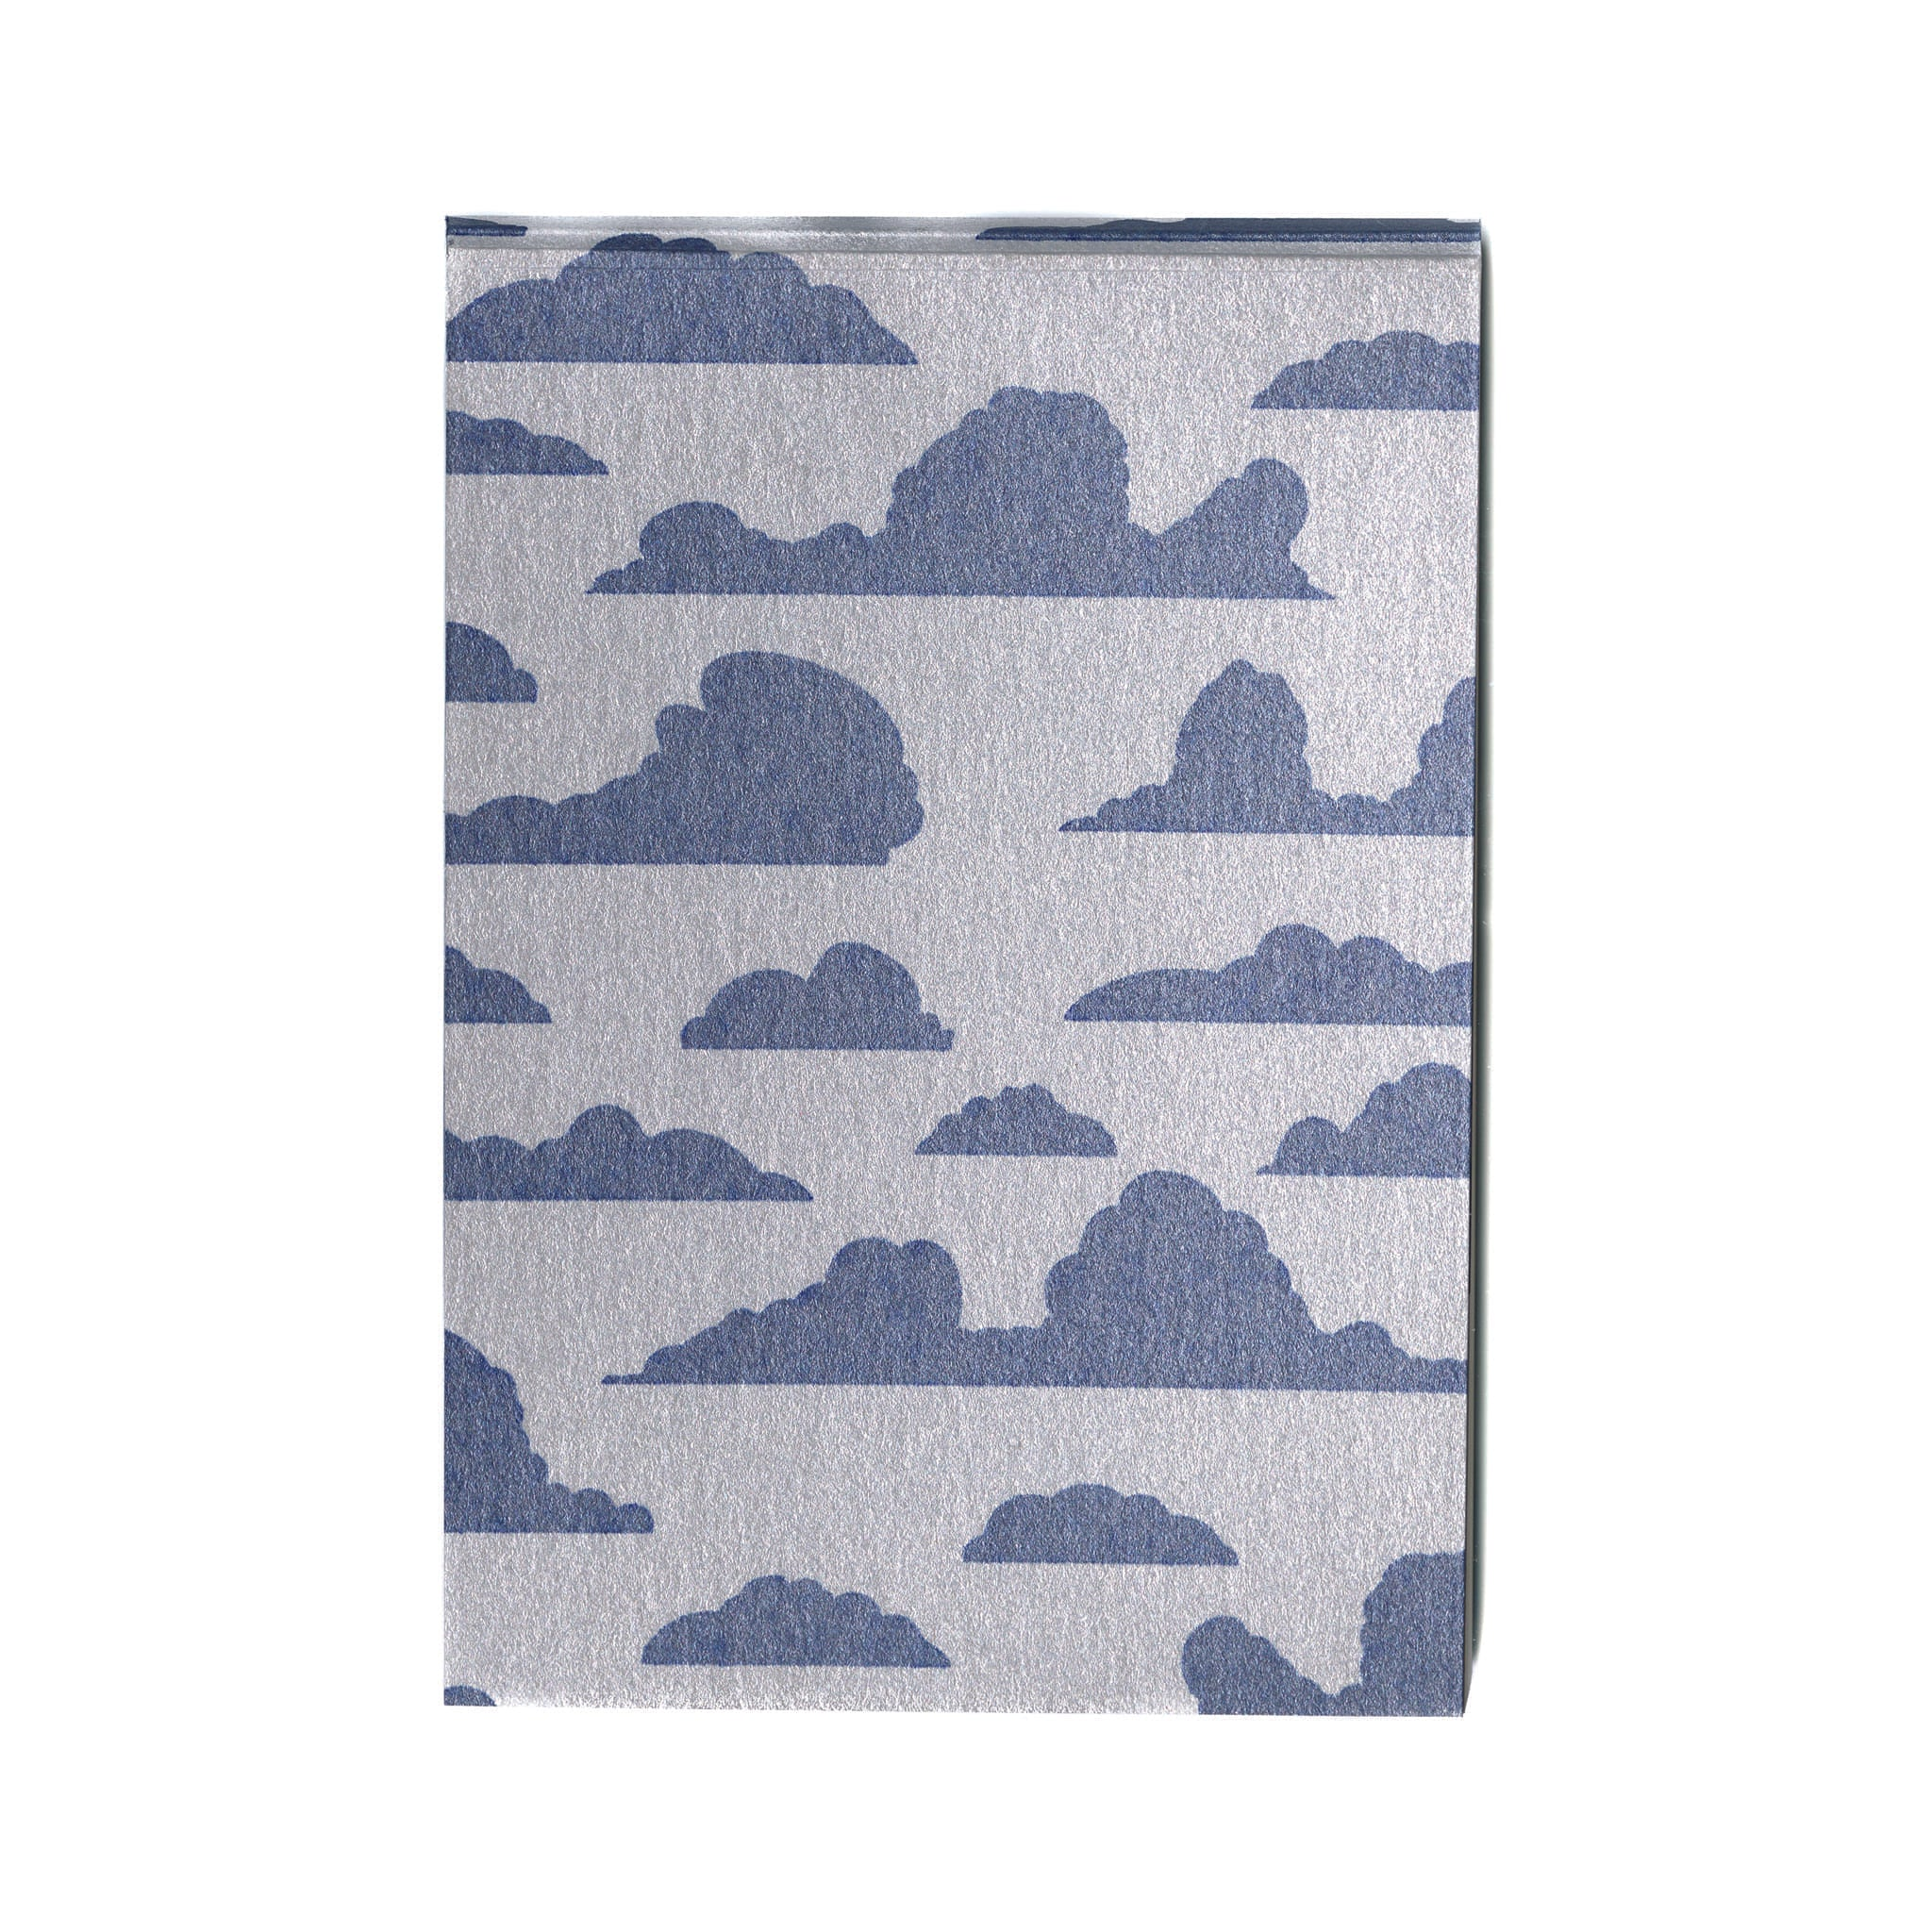 Pocket mini journal with original blue cloudy print cover and 100% cotton paper pages